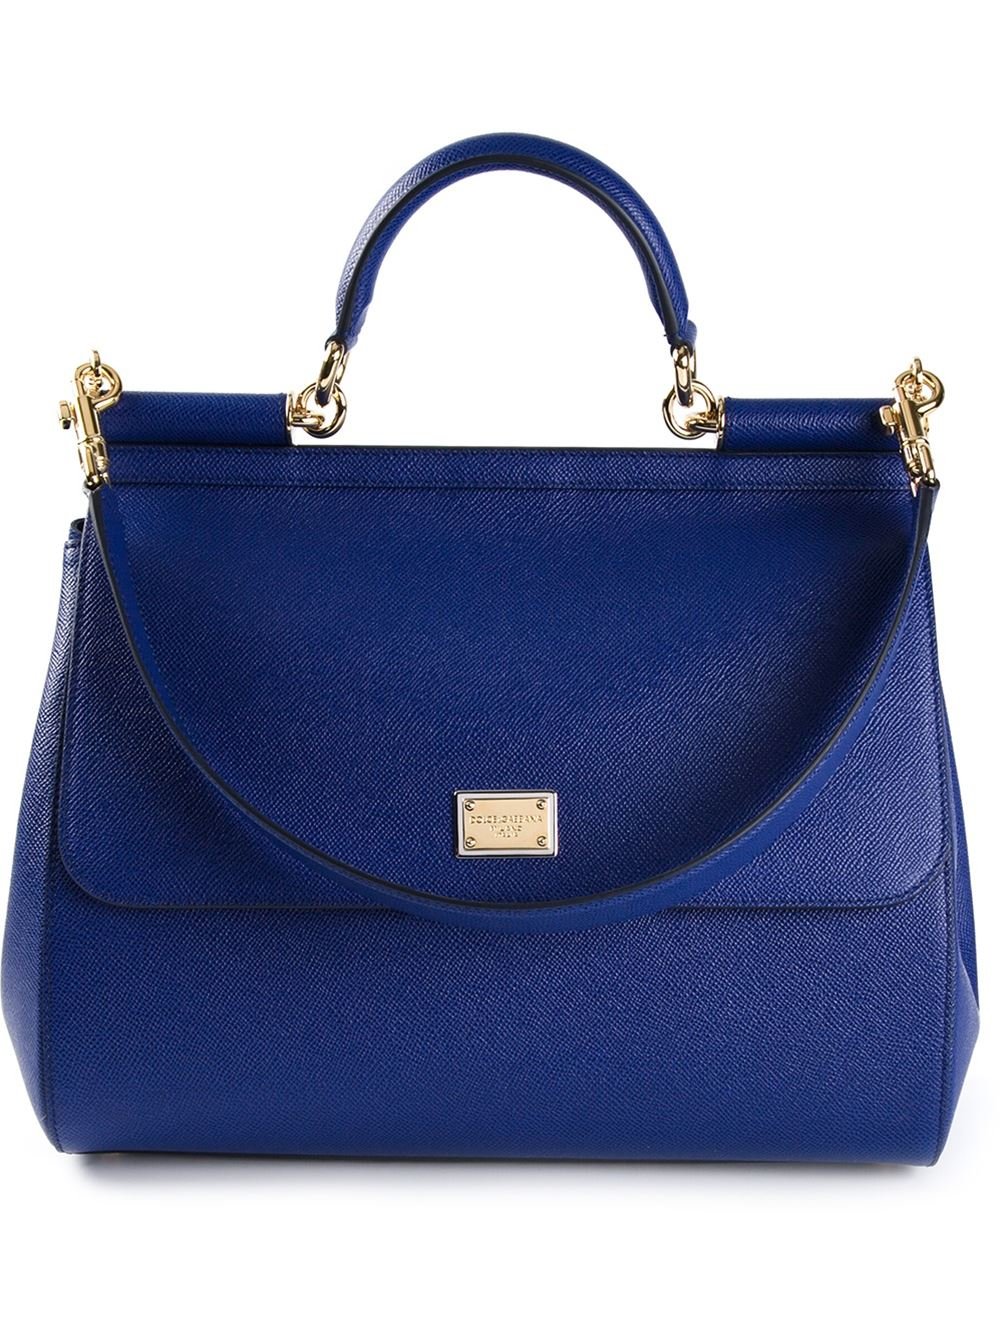 ... best service 537ab eb6e5 Lyst - Dolce Gabbana Sicily Large Calf-Leather  Tote in Blue ... 13e3795e98